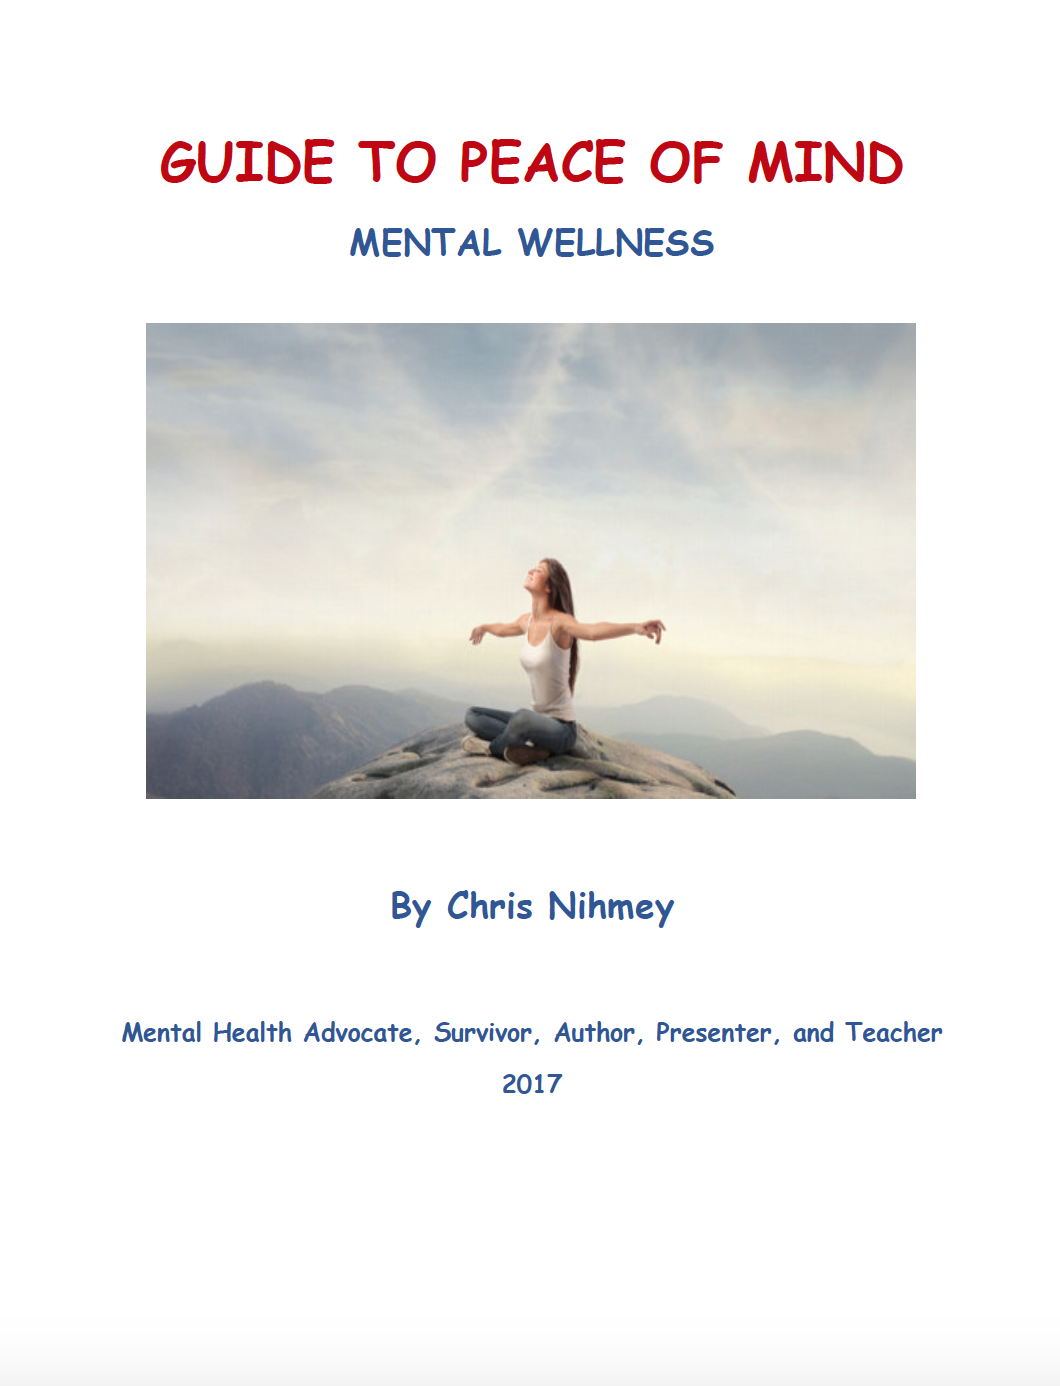 Guide to Peace of Mind